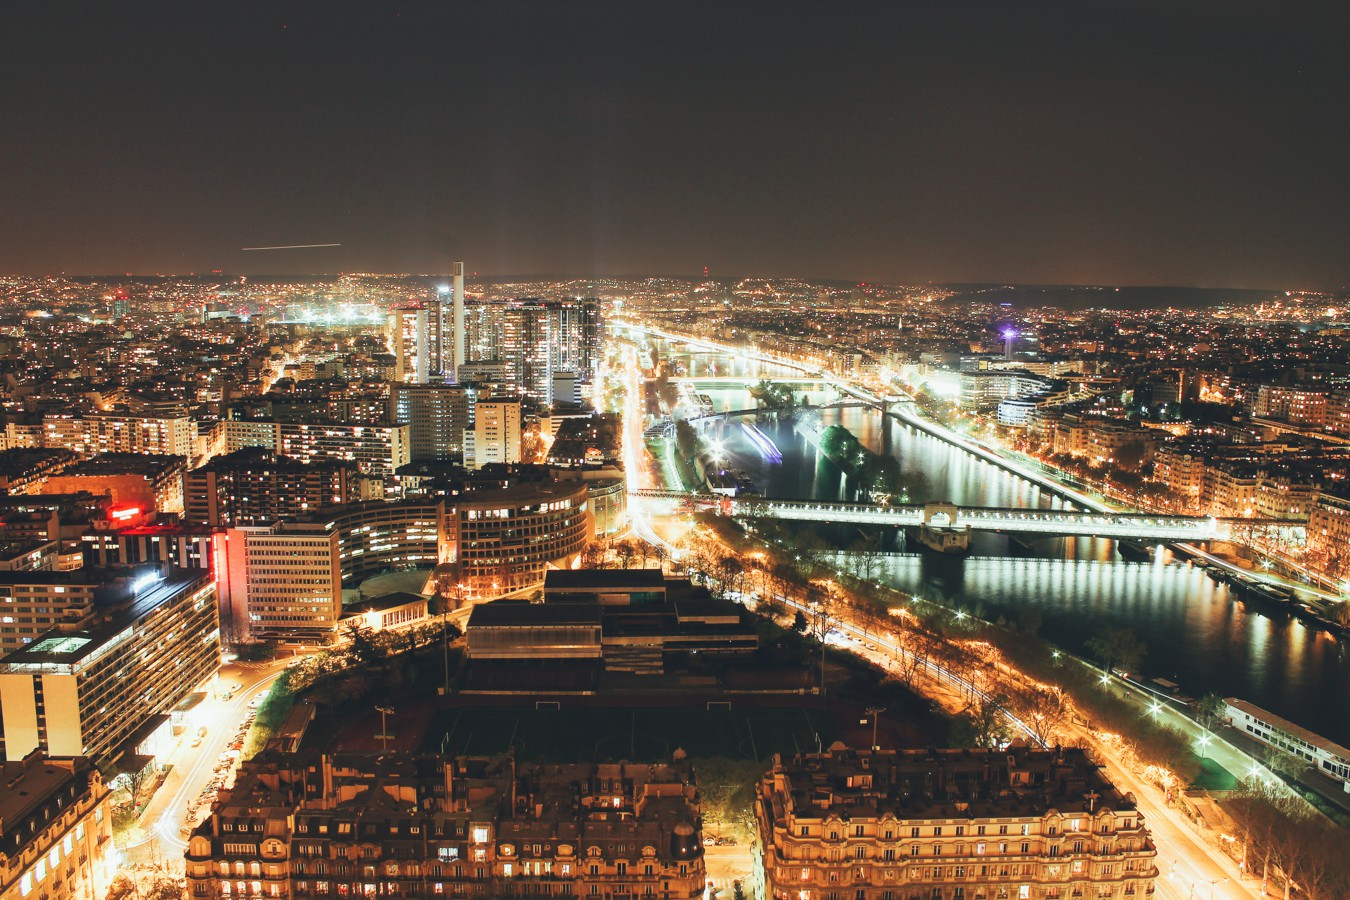 Things to do in Paris - Take in the view from the top of the Eiffel Tower (5)